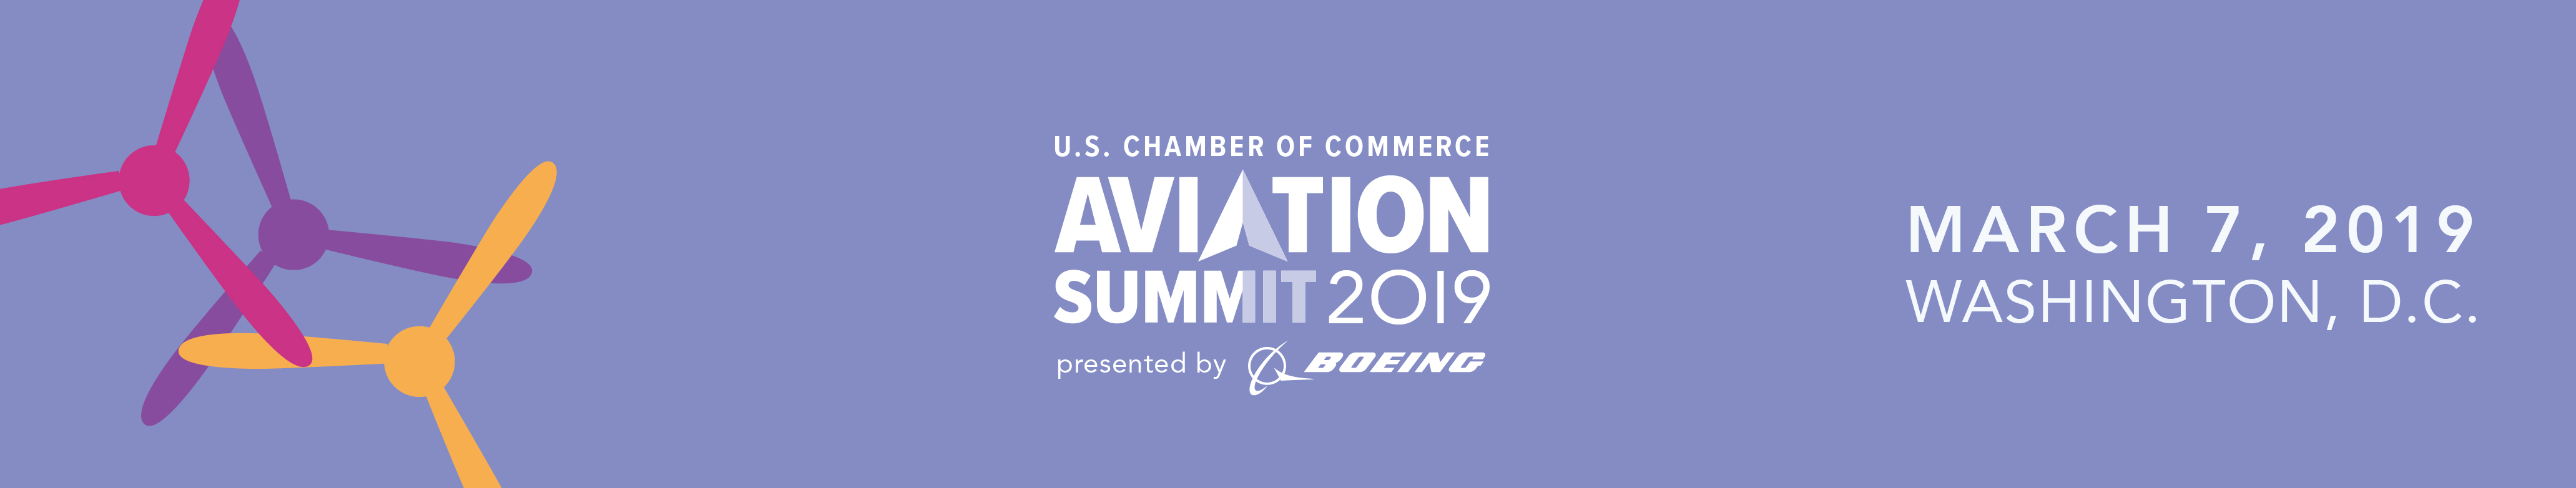 2019 Aviation Summit